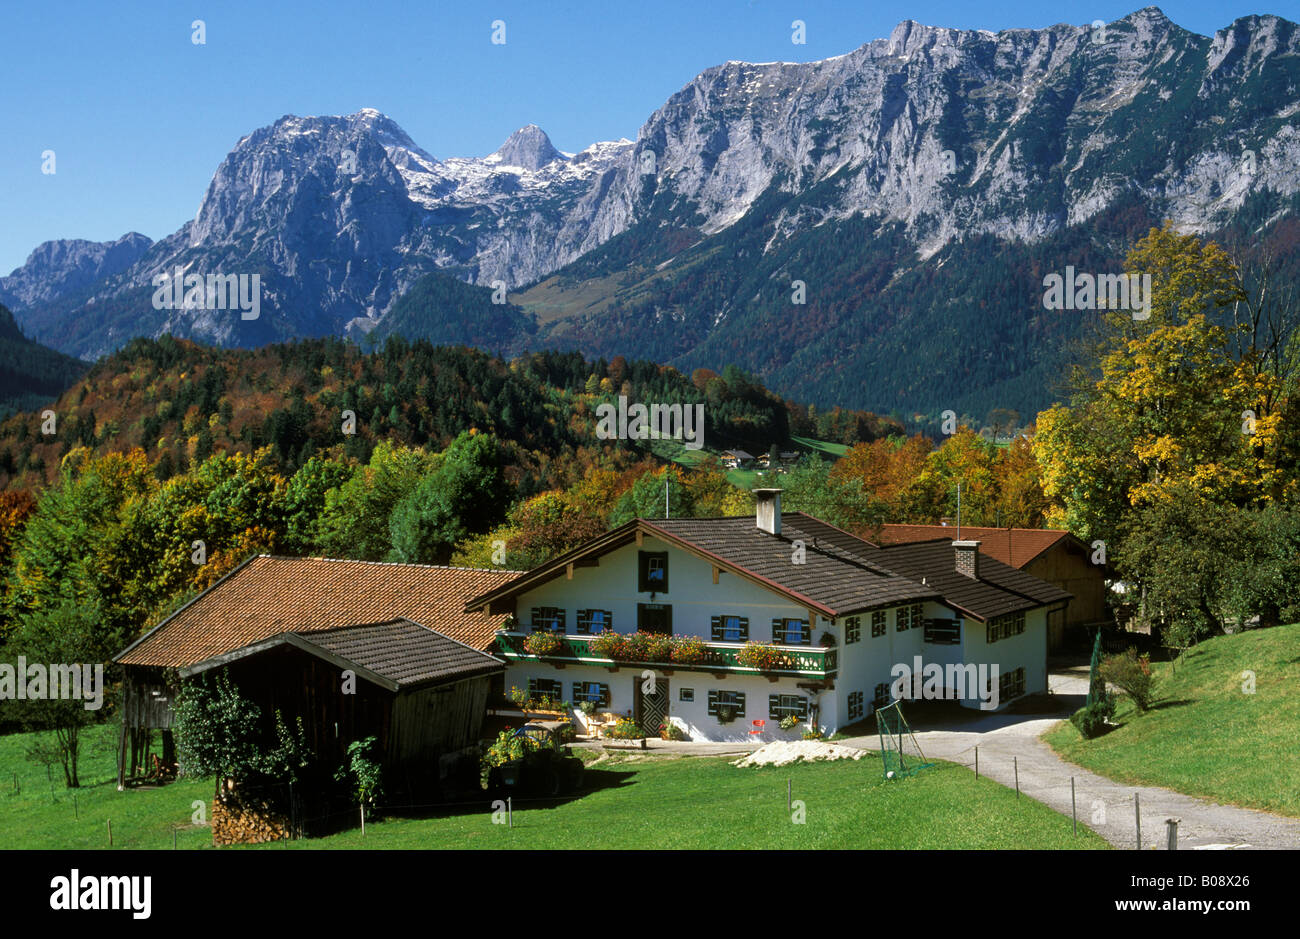 Ramsau village, Freidlinglehen, in front of the Reiter Alps, Berchtesgaden region, Oberbayern (Upper Bavaria), Germany, Europe Stock Photo